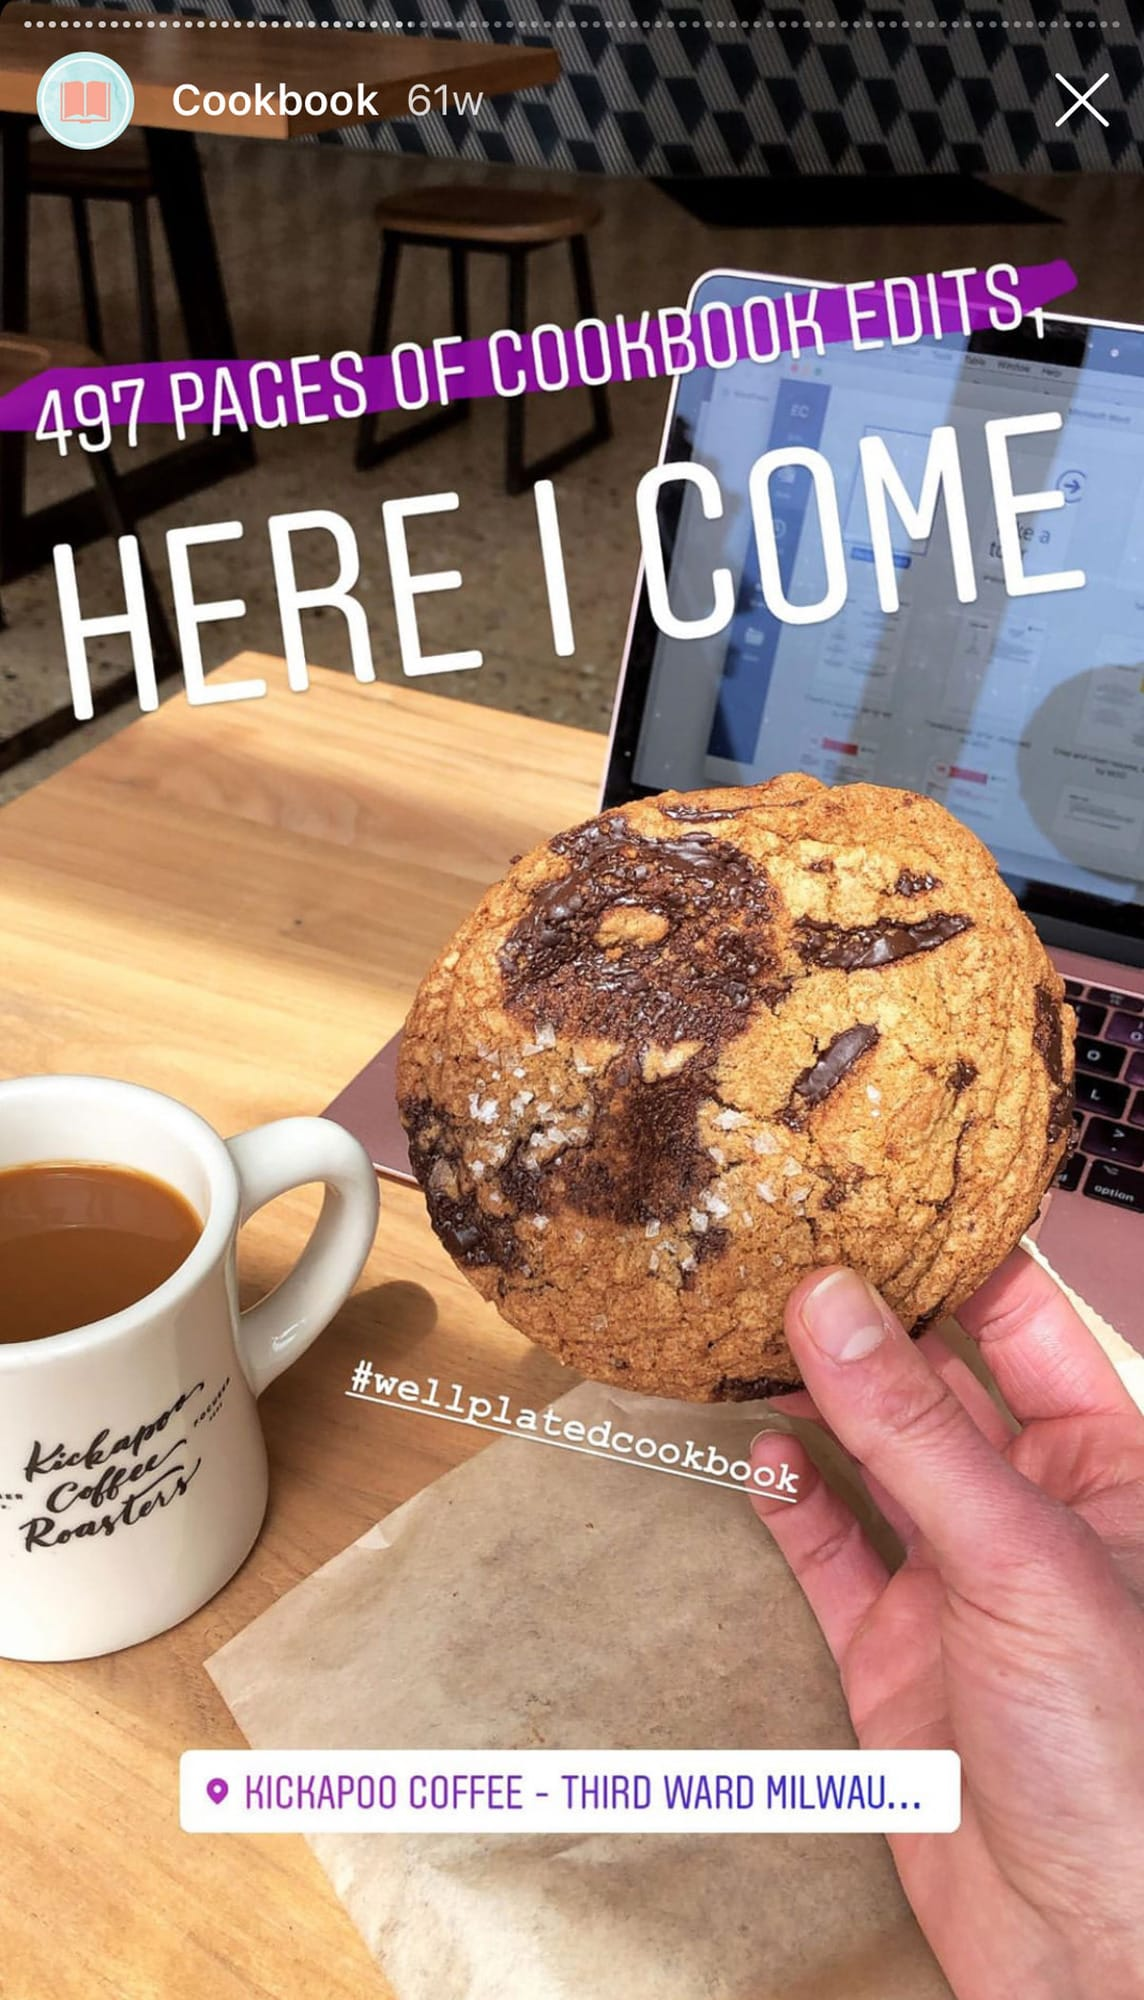 Chocolate chip cookie and coffee